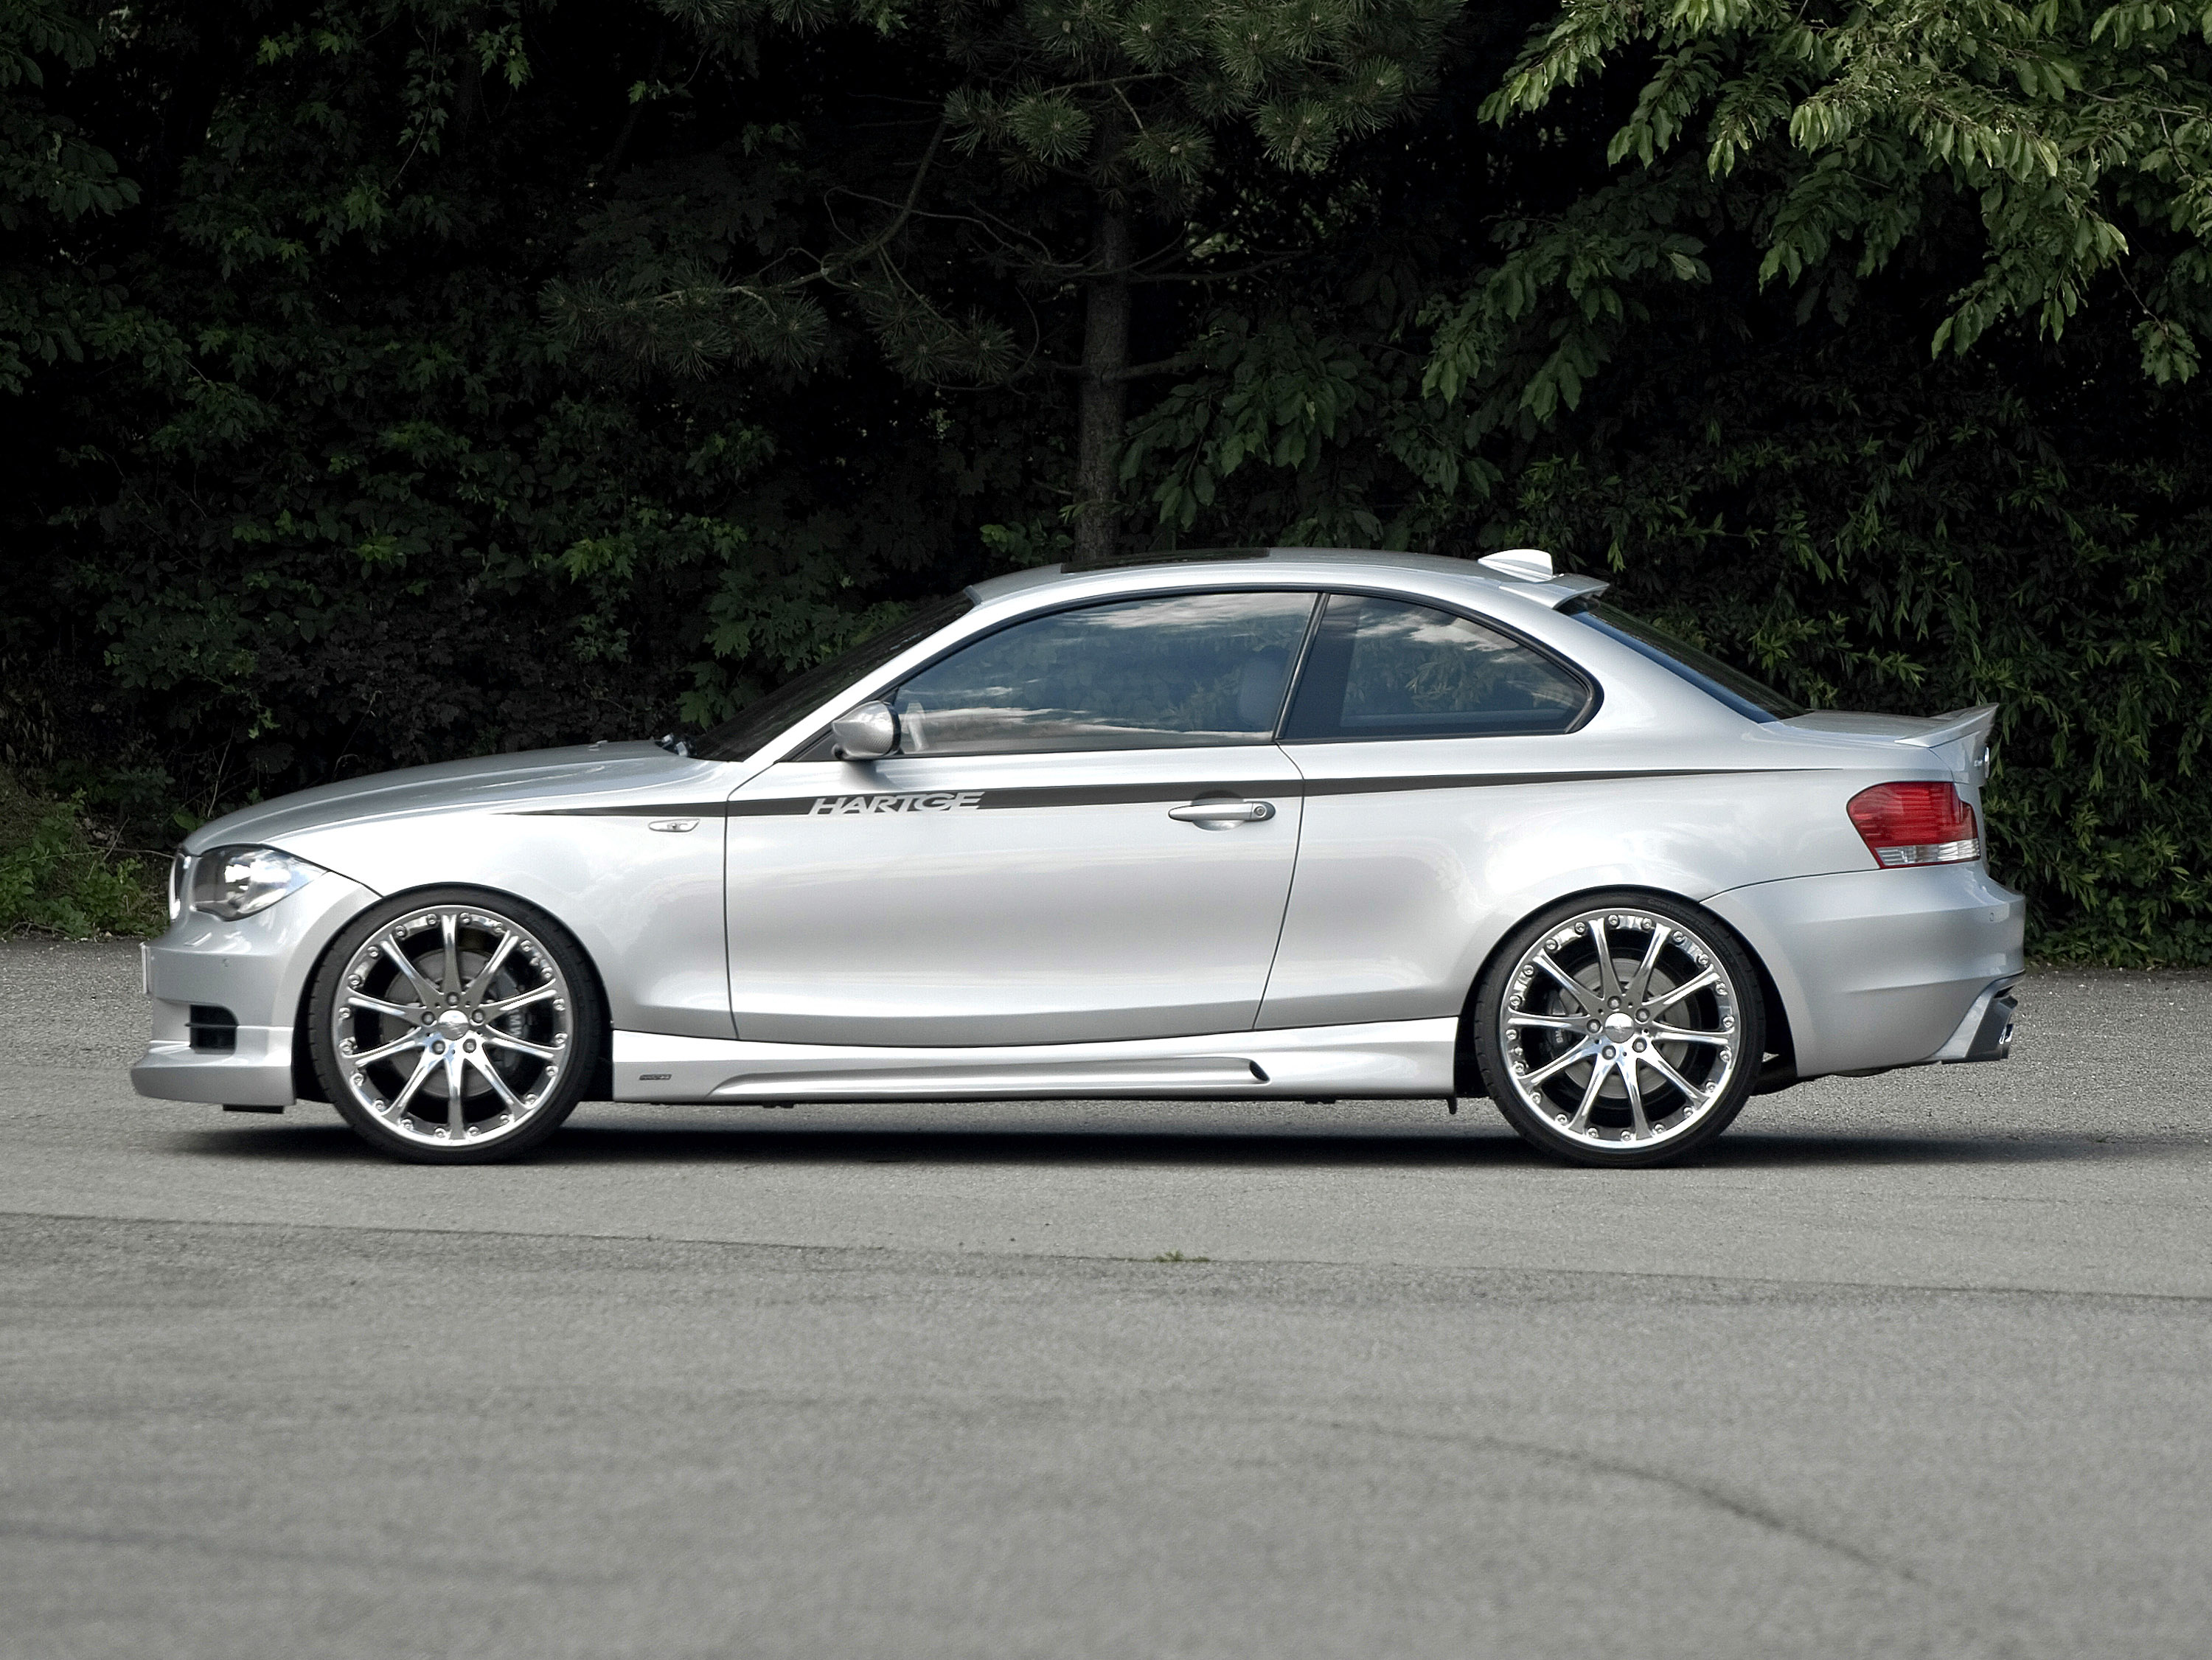 X1 Photos Mobile App >> HARTGE BMW 135i Coupe - Picture 9050